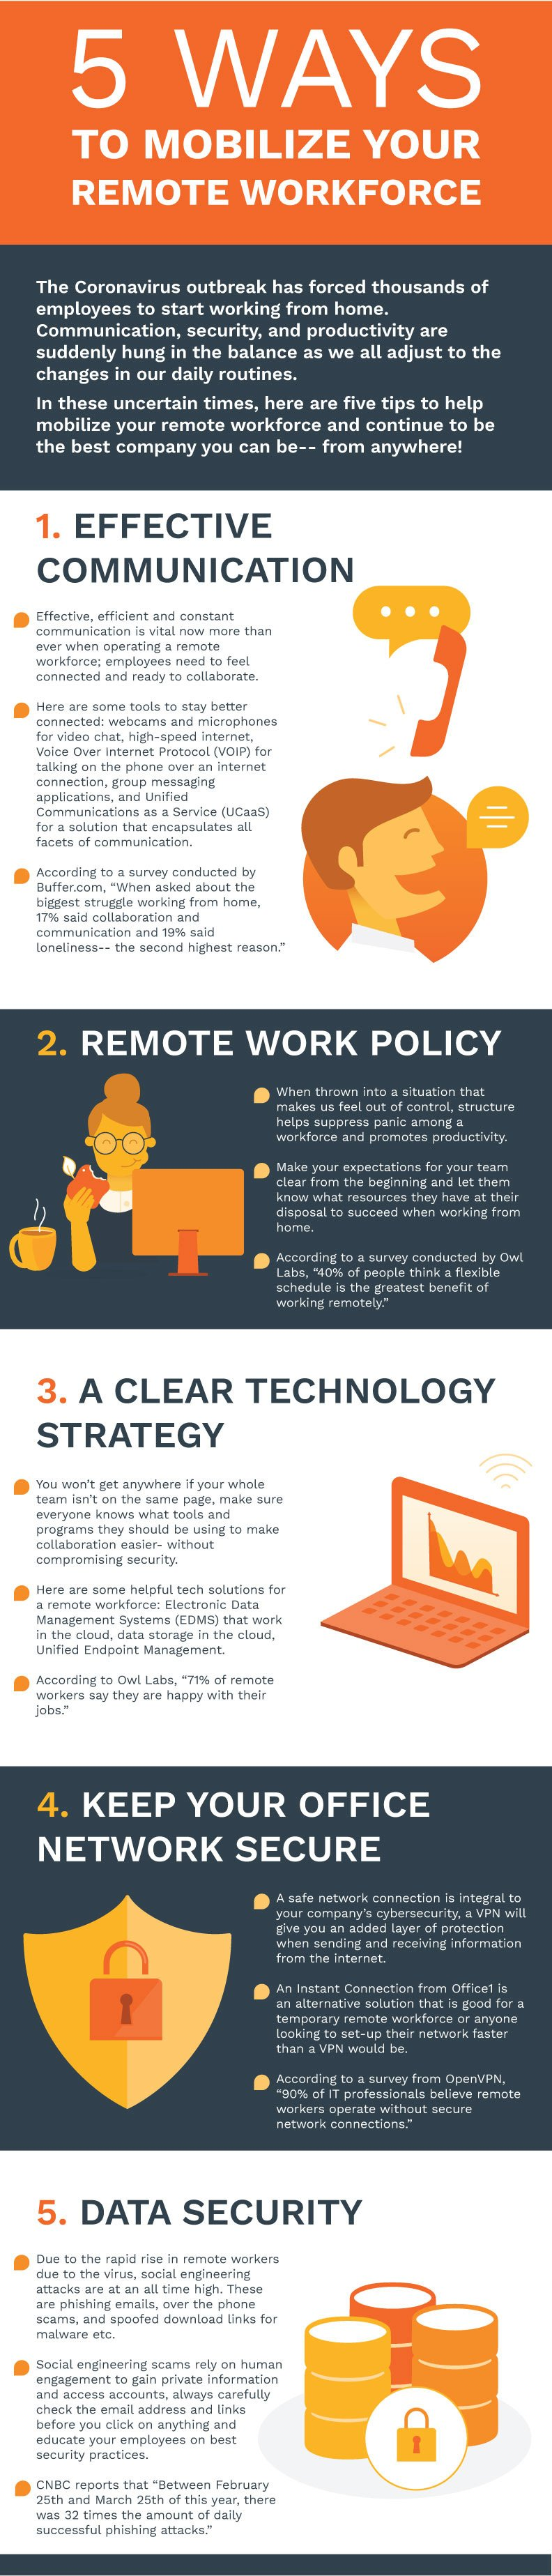 5 ways to mobilize your remote workforce during the coronavirus, COVID-19 crisis